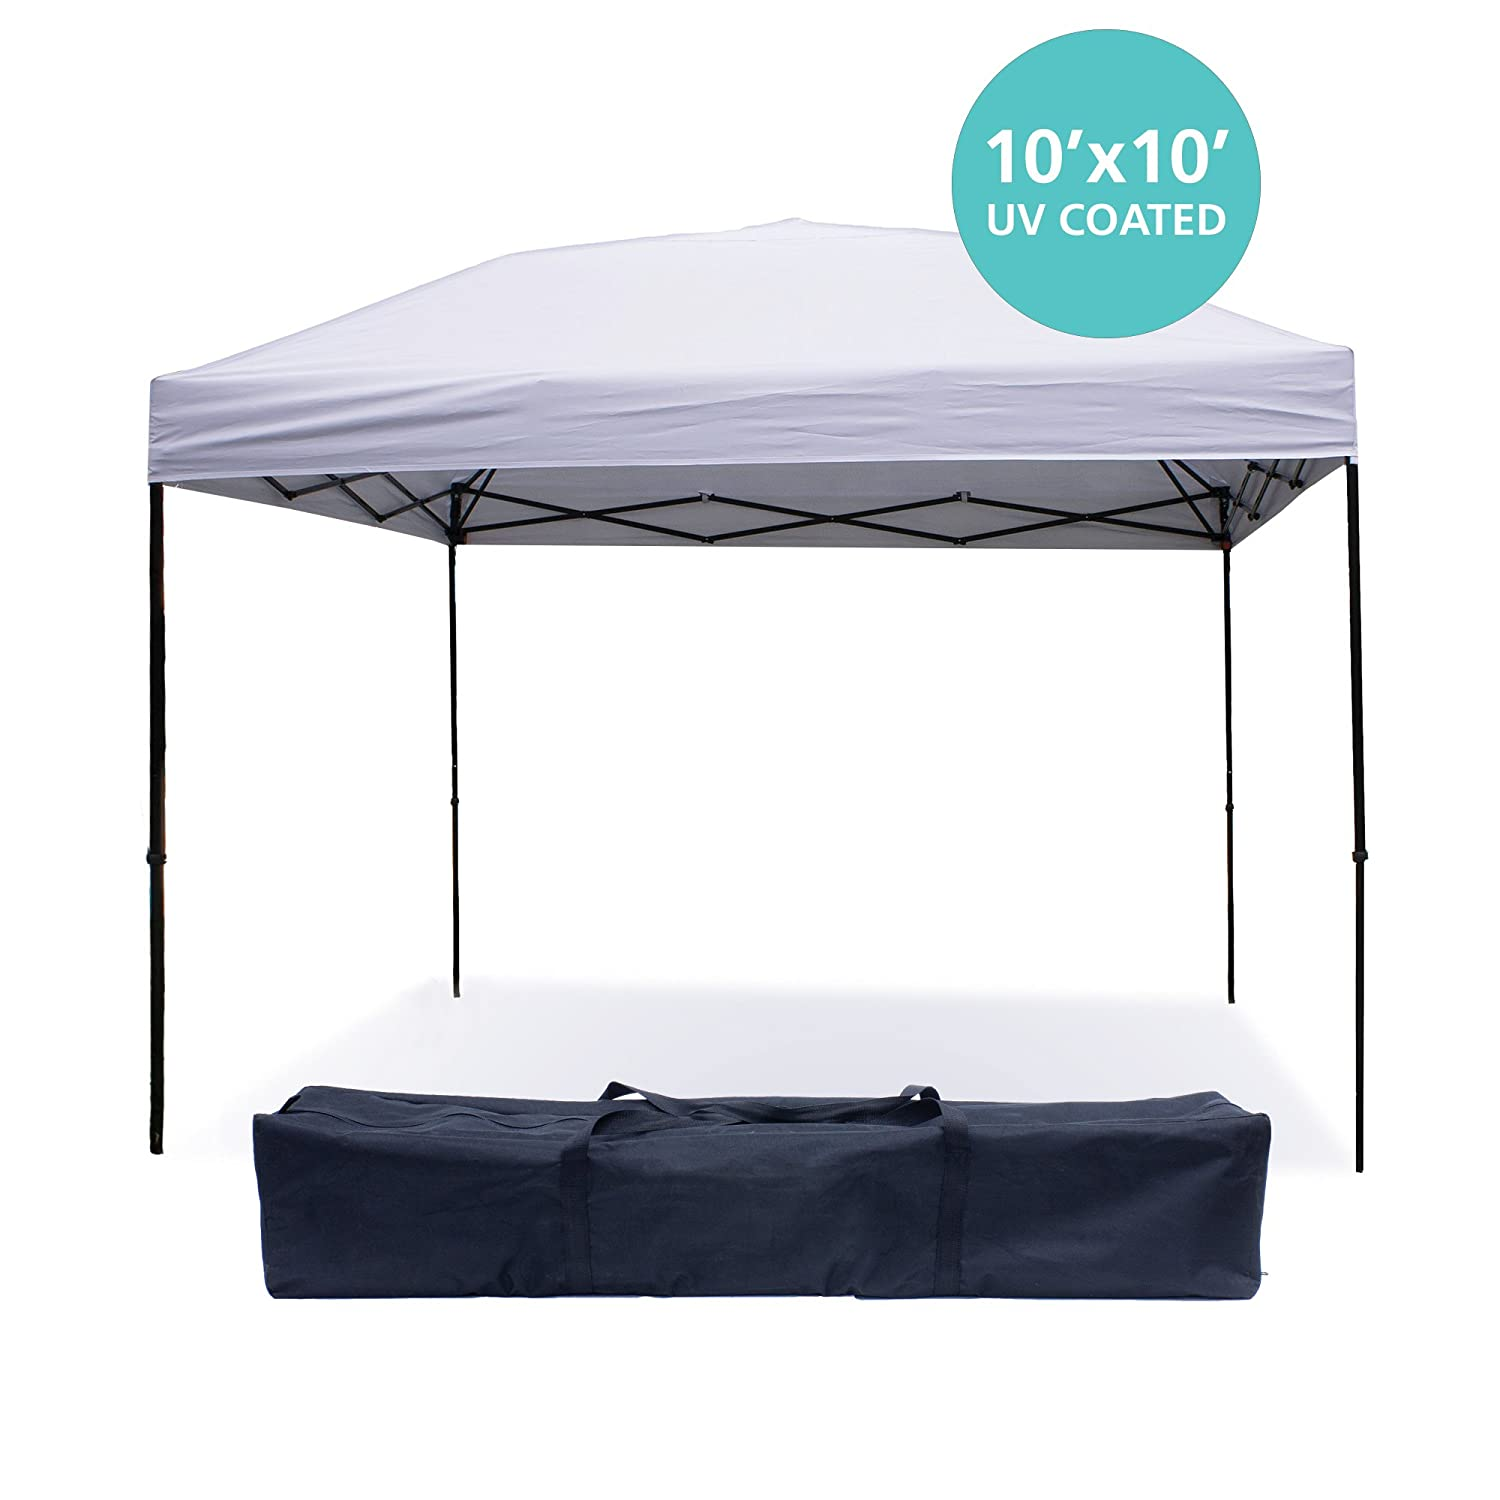 Amazon.com  Pop Up Canopy Tent 10 x 10 Feet White - UV Coated Waterproof Outdoor Party Gazebo Tent ...  Garden u0026 Outdoor  sc 1 st  Amazon.com & Amazon.com : Pop Up Canopy Tent 10 x 10 Feet White - UV Coated ...